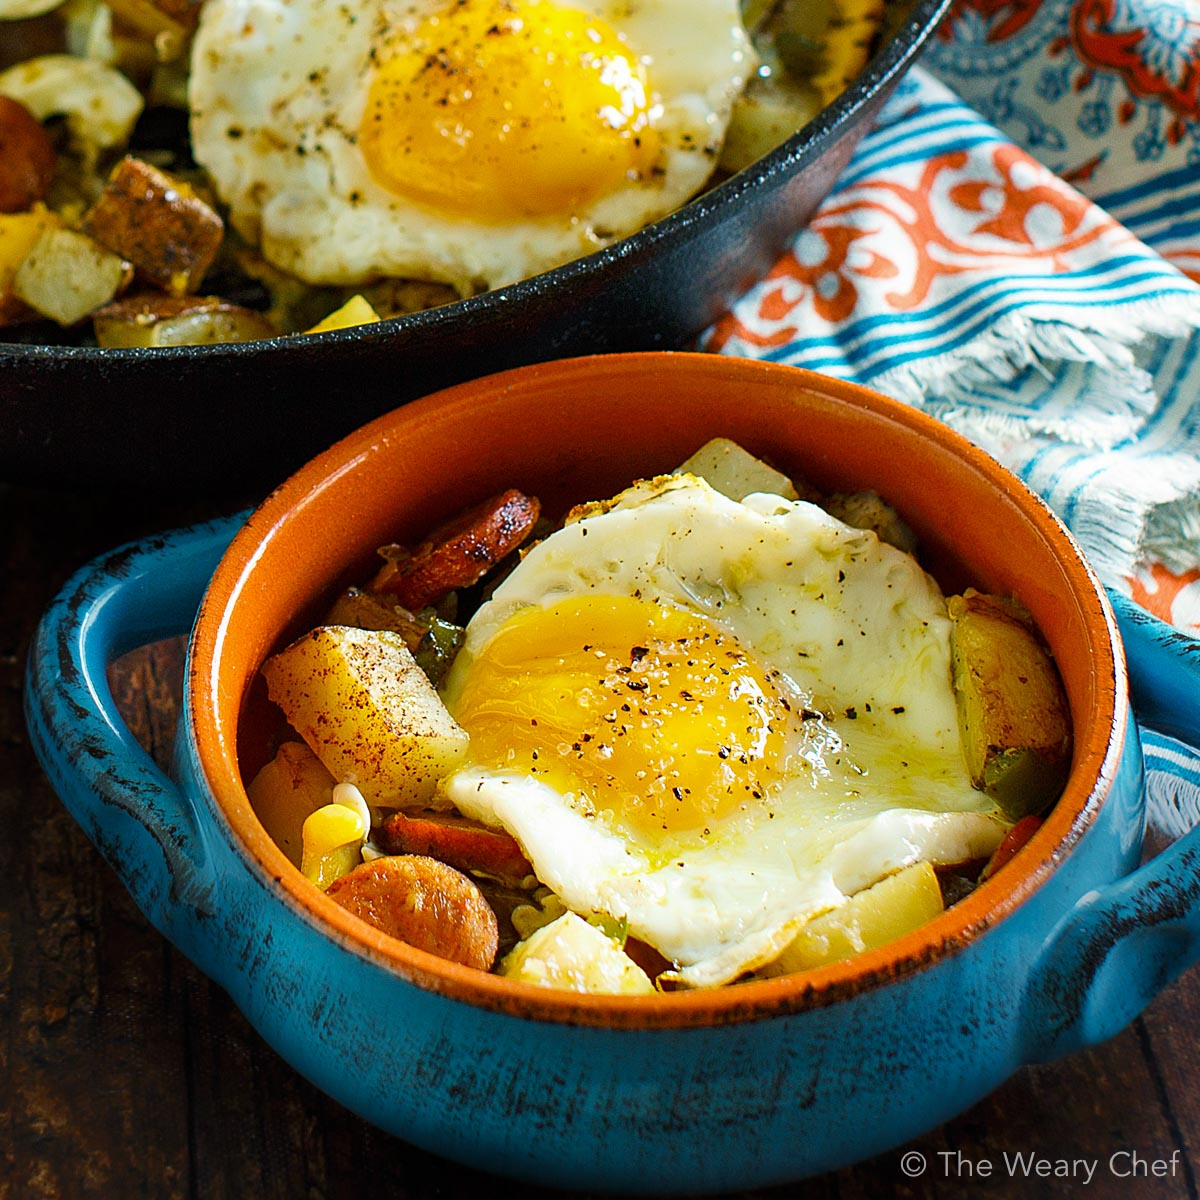 Baked Eggs over Roasted Potatoes and Sausage makes a perfect meal any time of day! #eggs #sausage #potatoes #breakfast